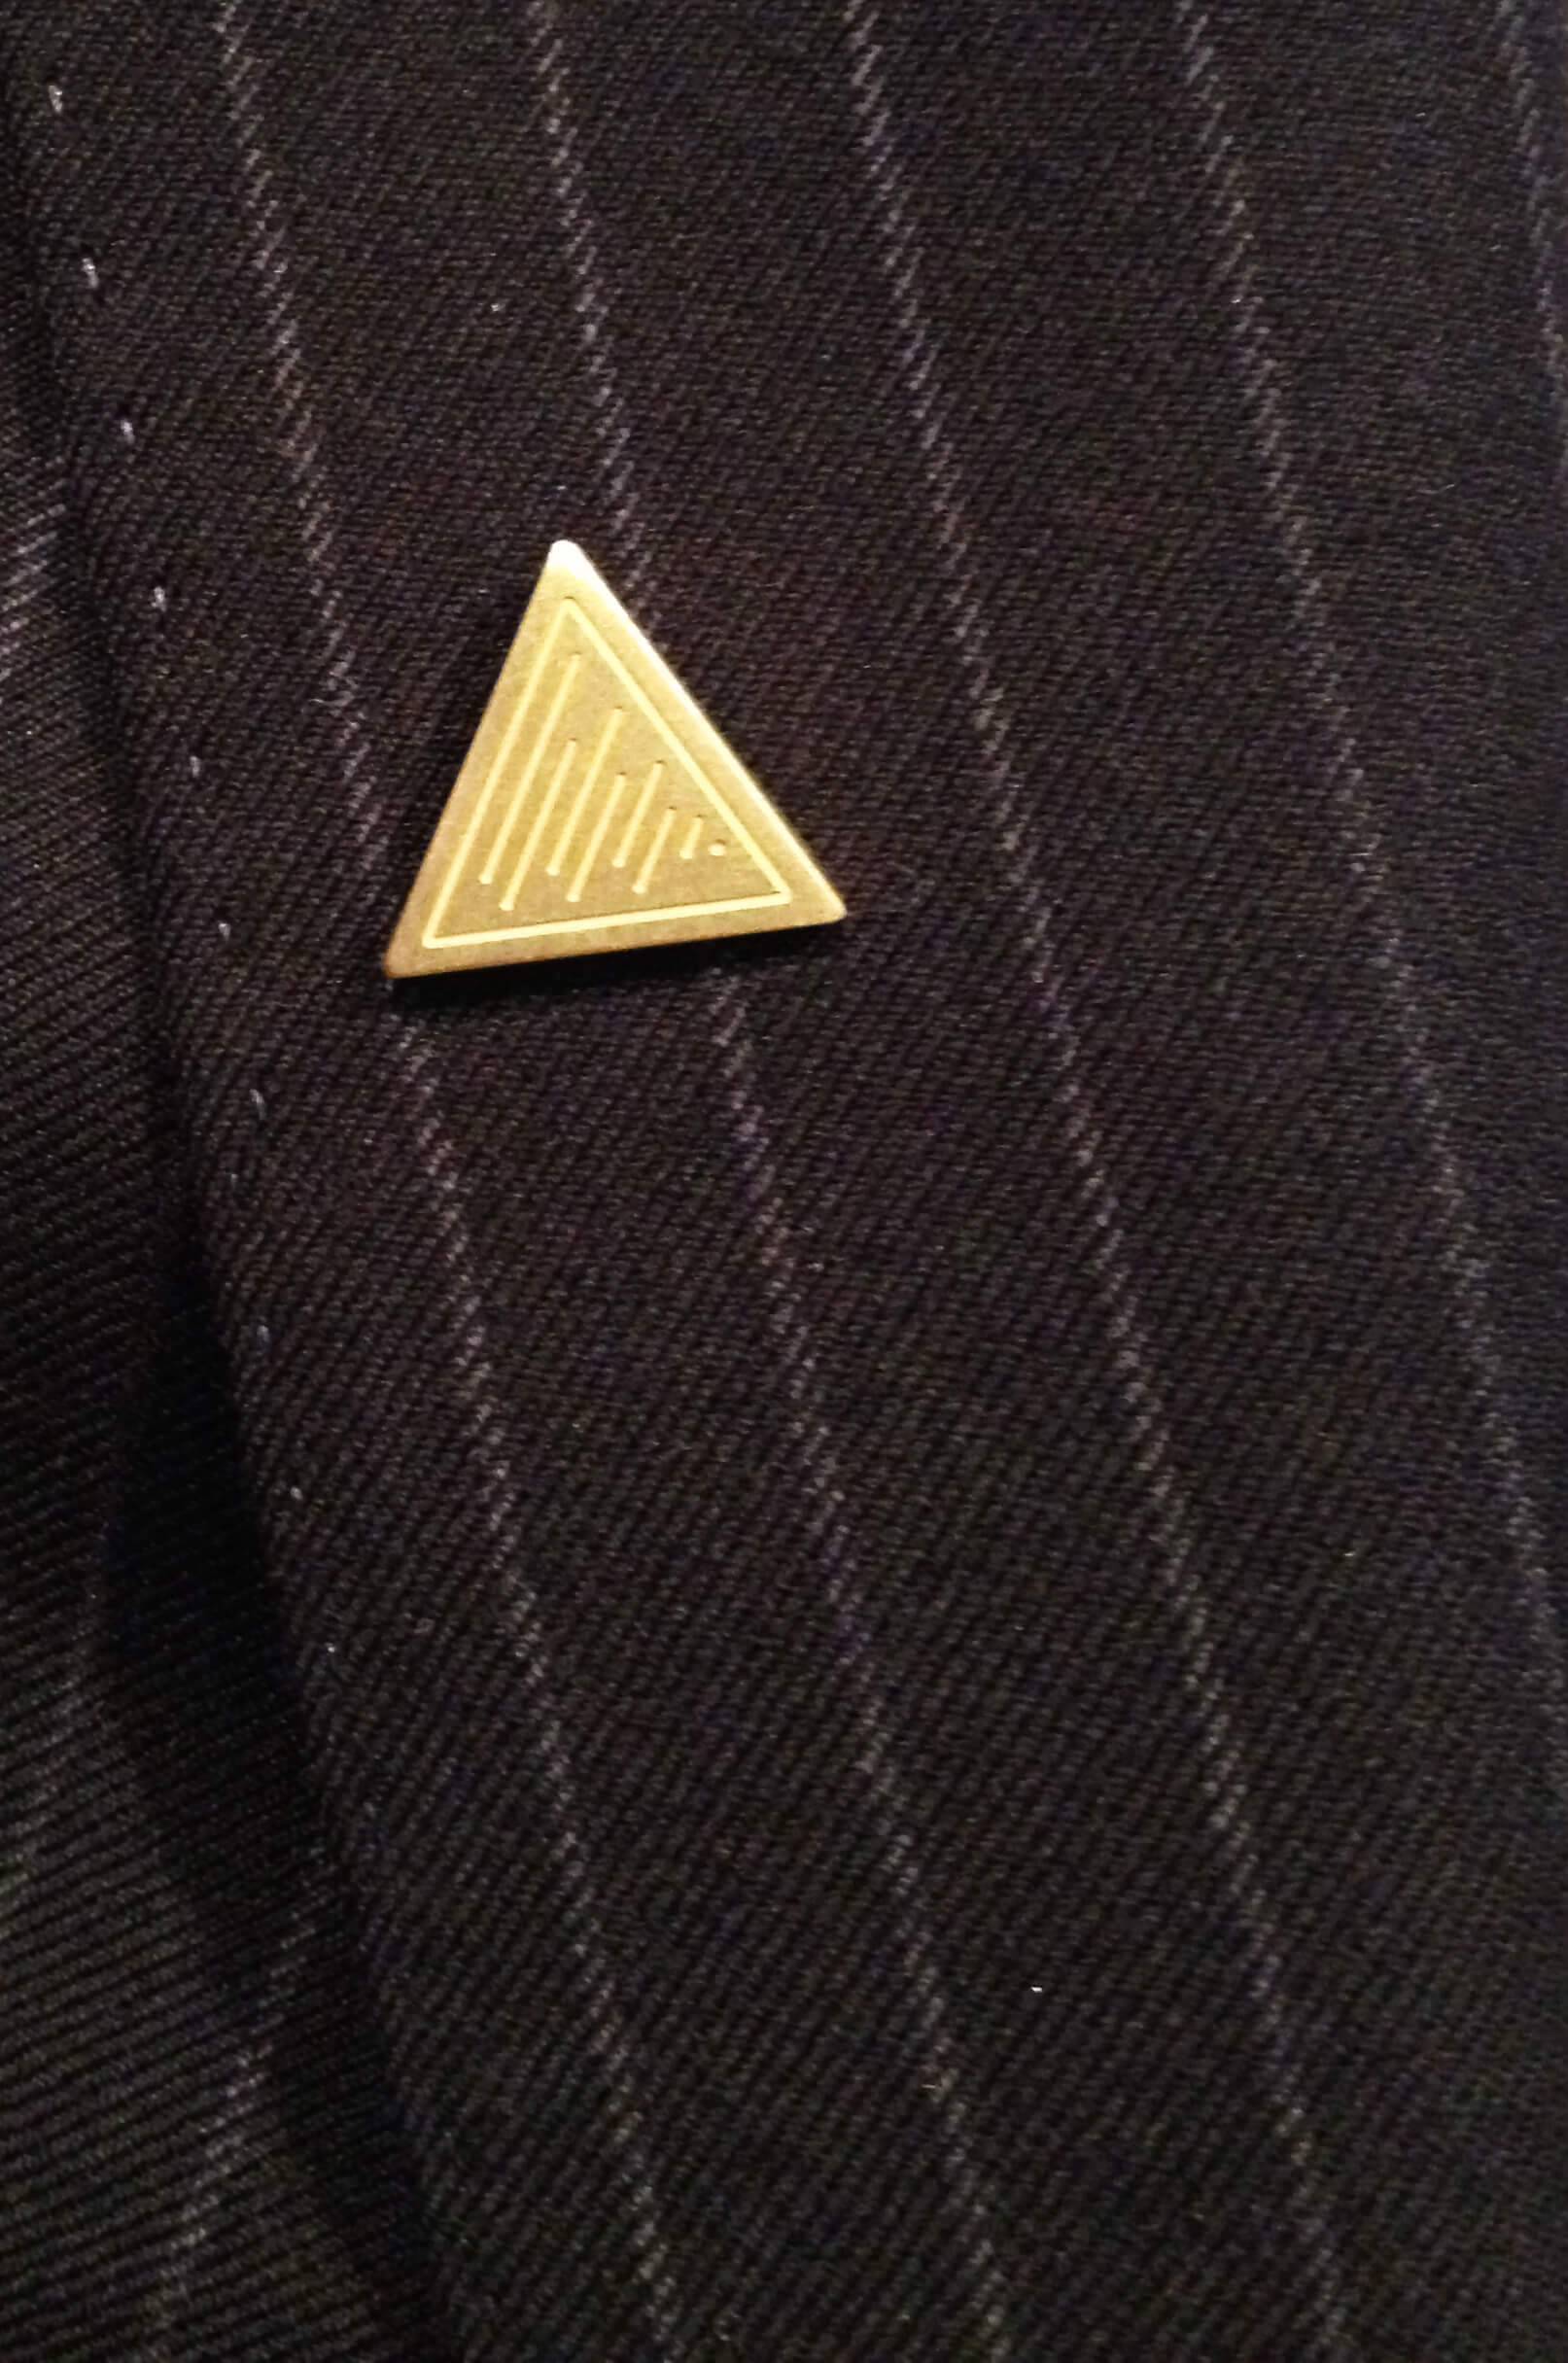 LOFT PIN BADGE